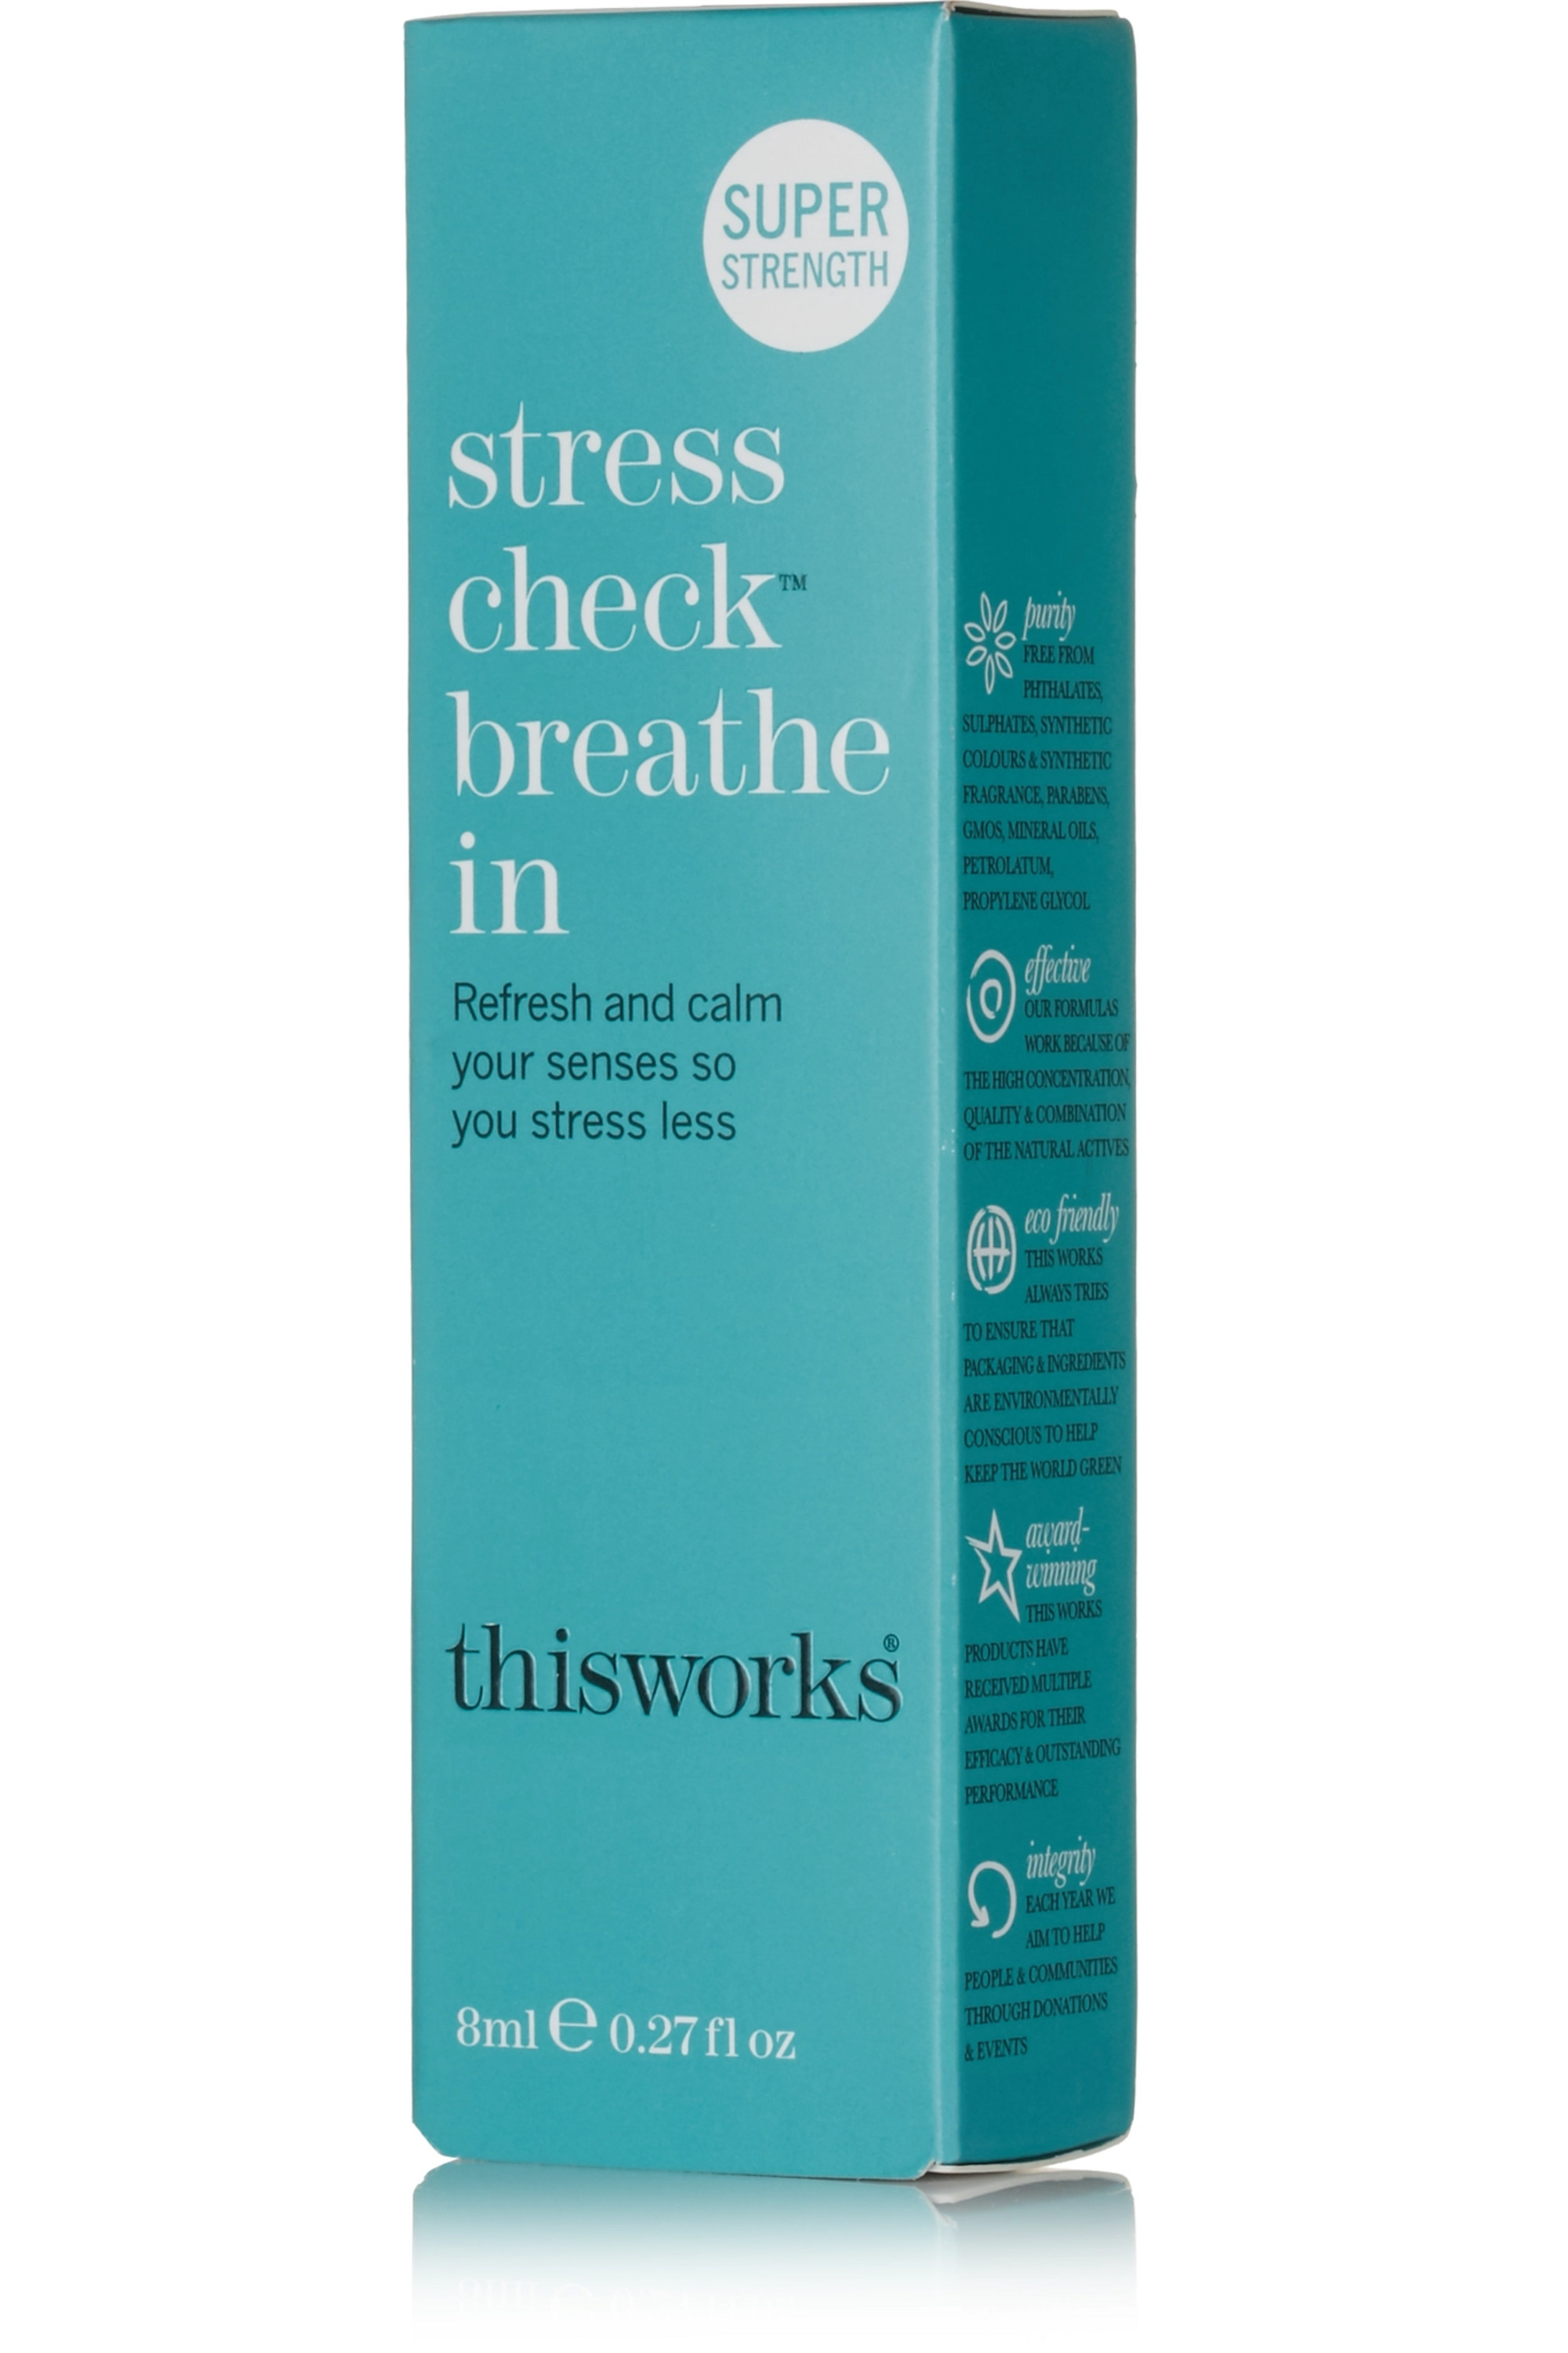 THIS WORKS Stress Check Breathe In, 8ml